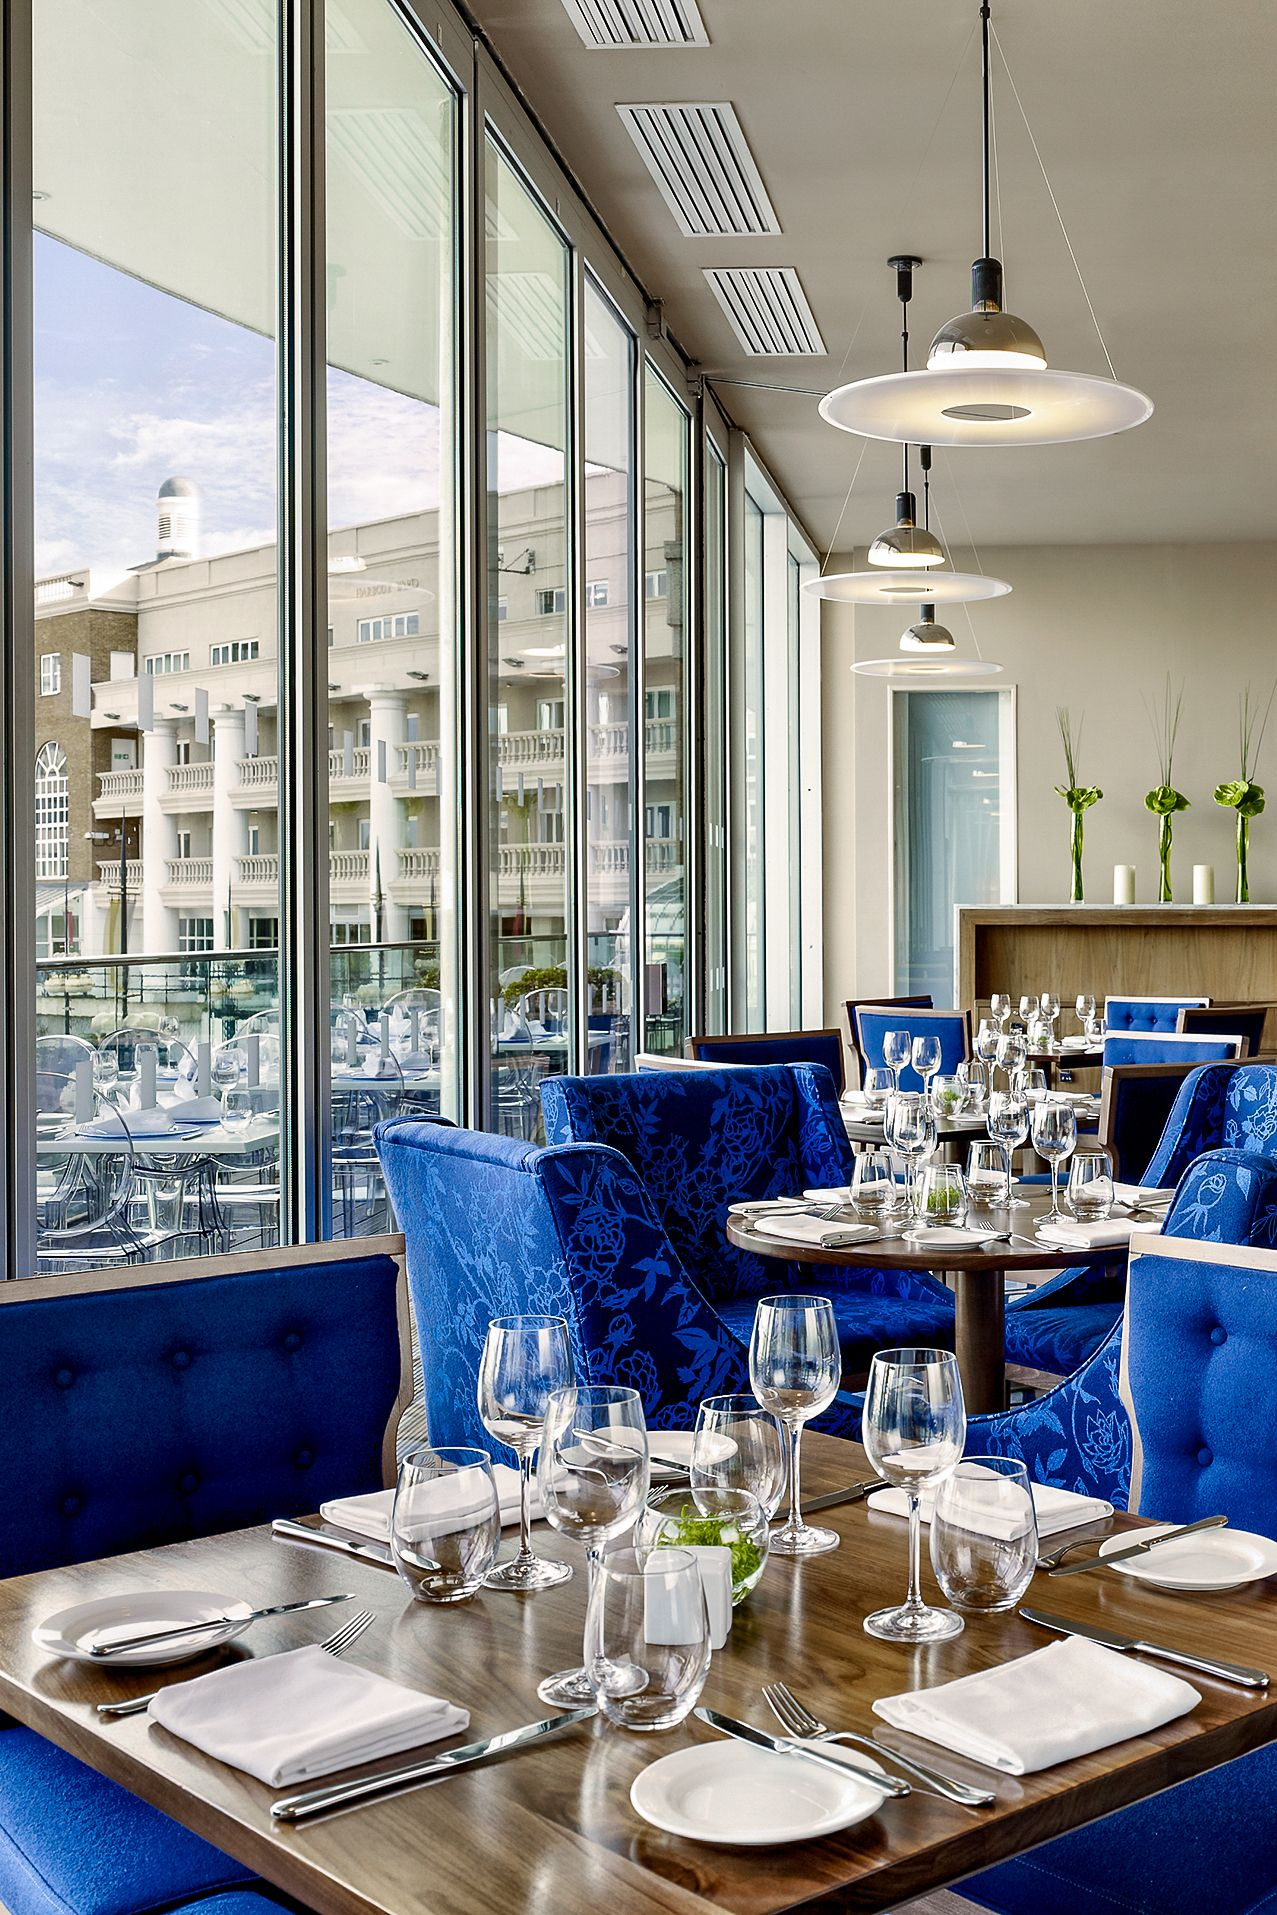 The Chelsea Harbour Hotel Chelsea Harbour London Plush Suites Come As Standard And Are Extra Extra Roomy So Nothing Ca London Living Chelsea Hotel Hotel